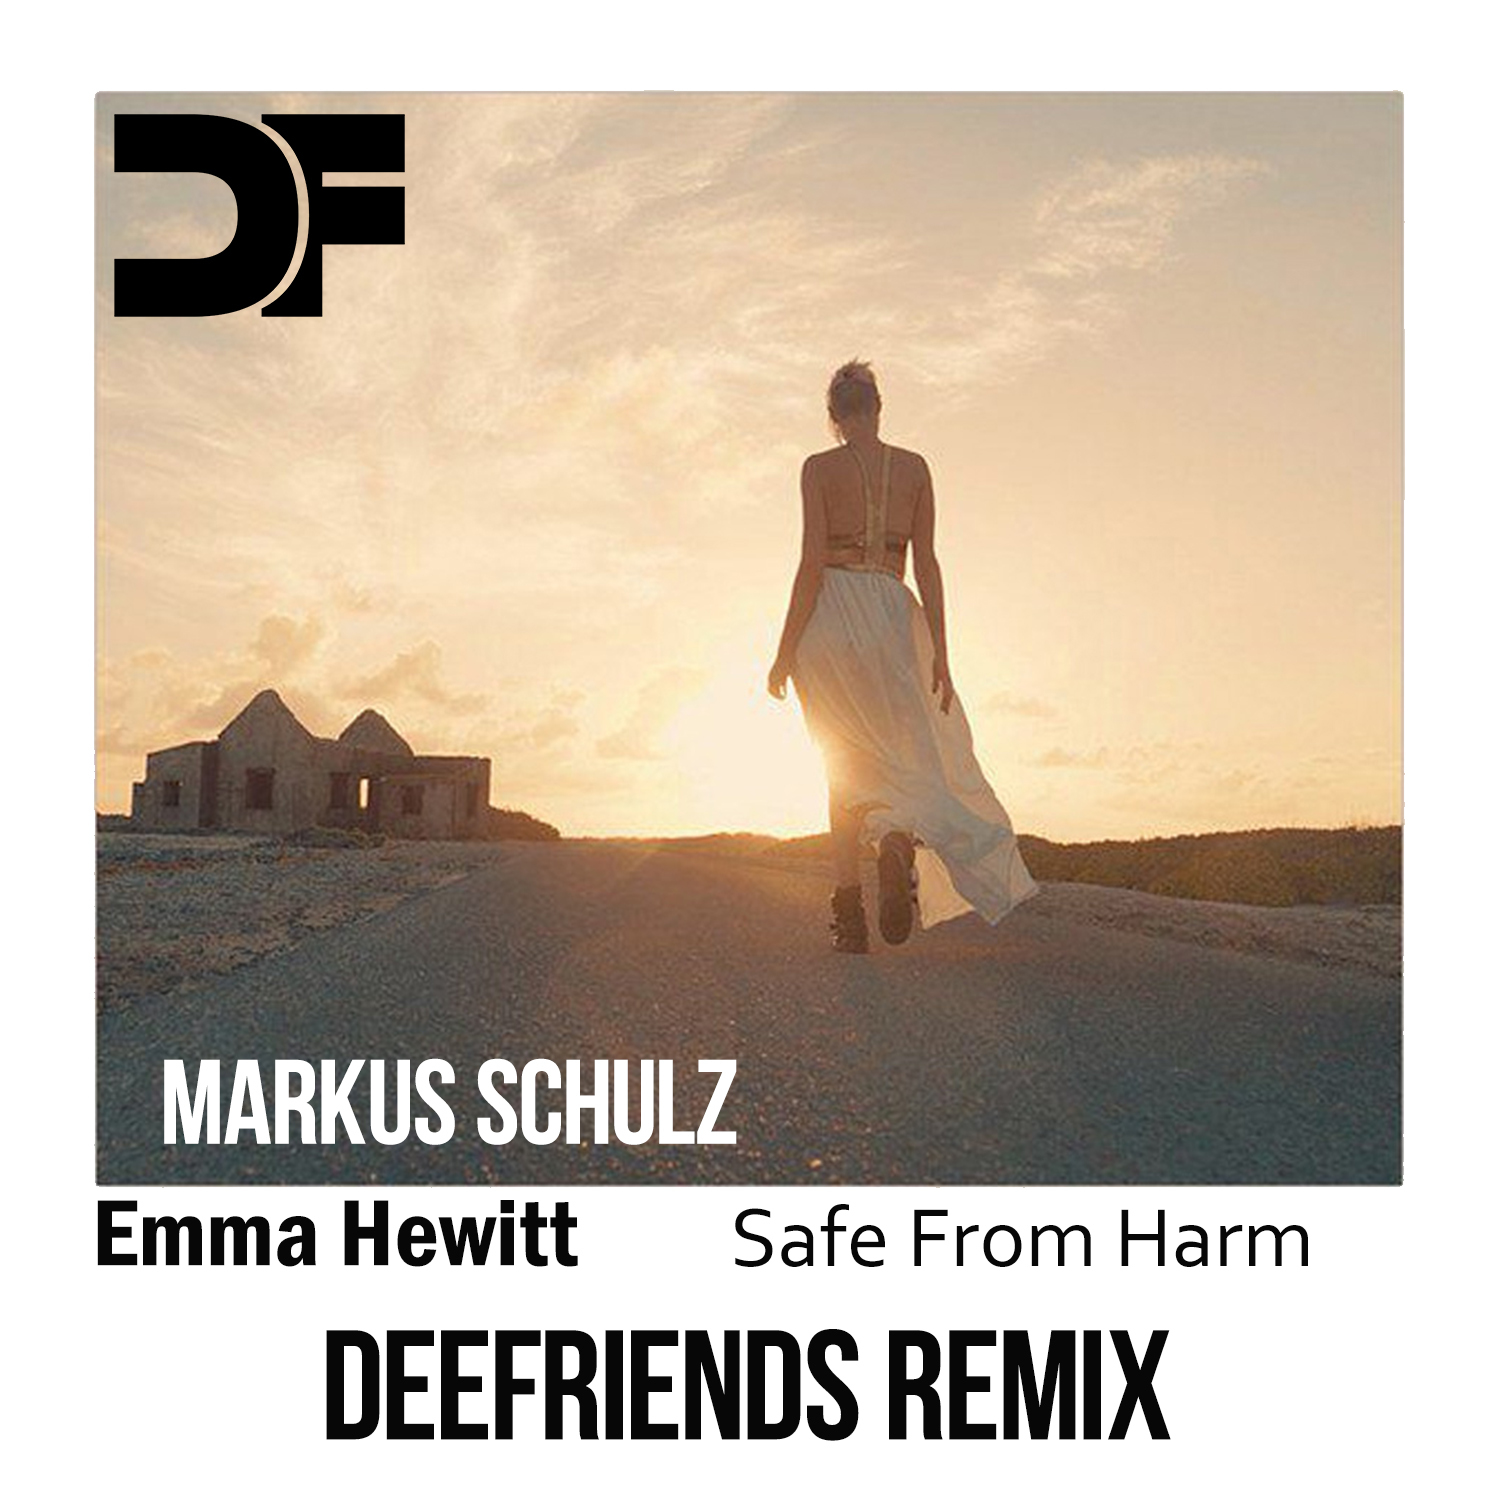 Remix Competition: Markus Schulz and Emma Hewitt - Safe From Harm